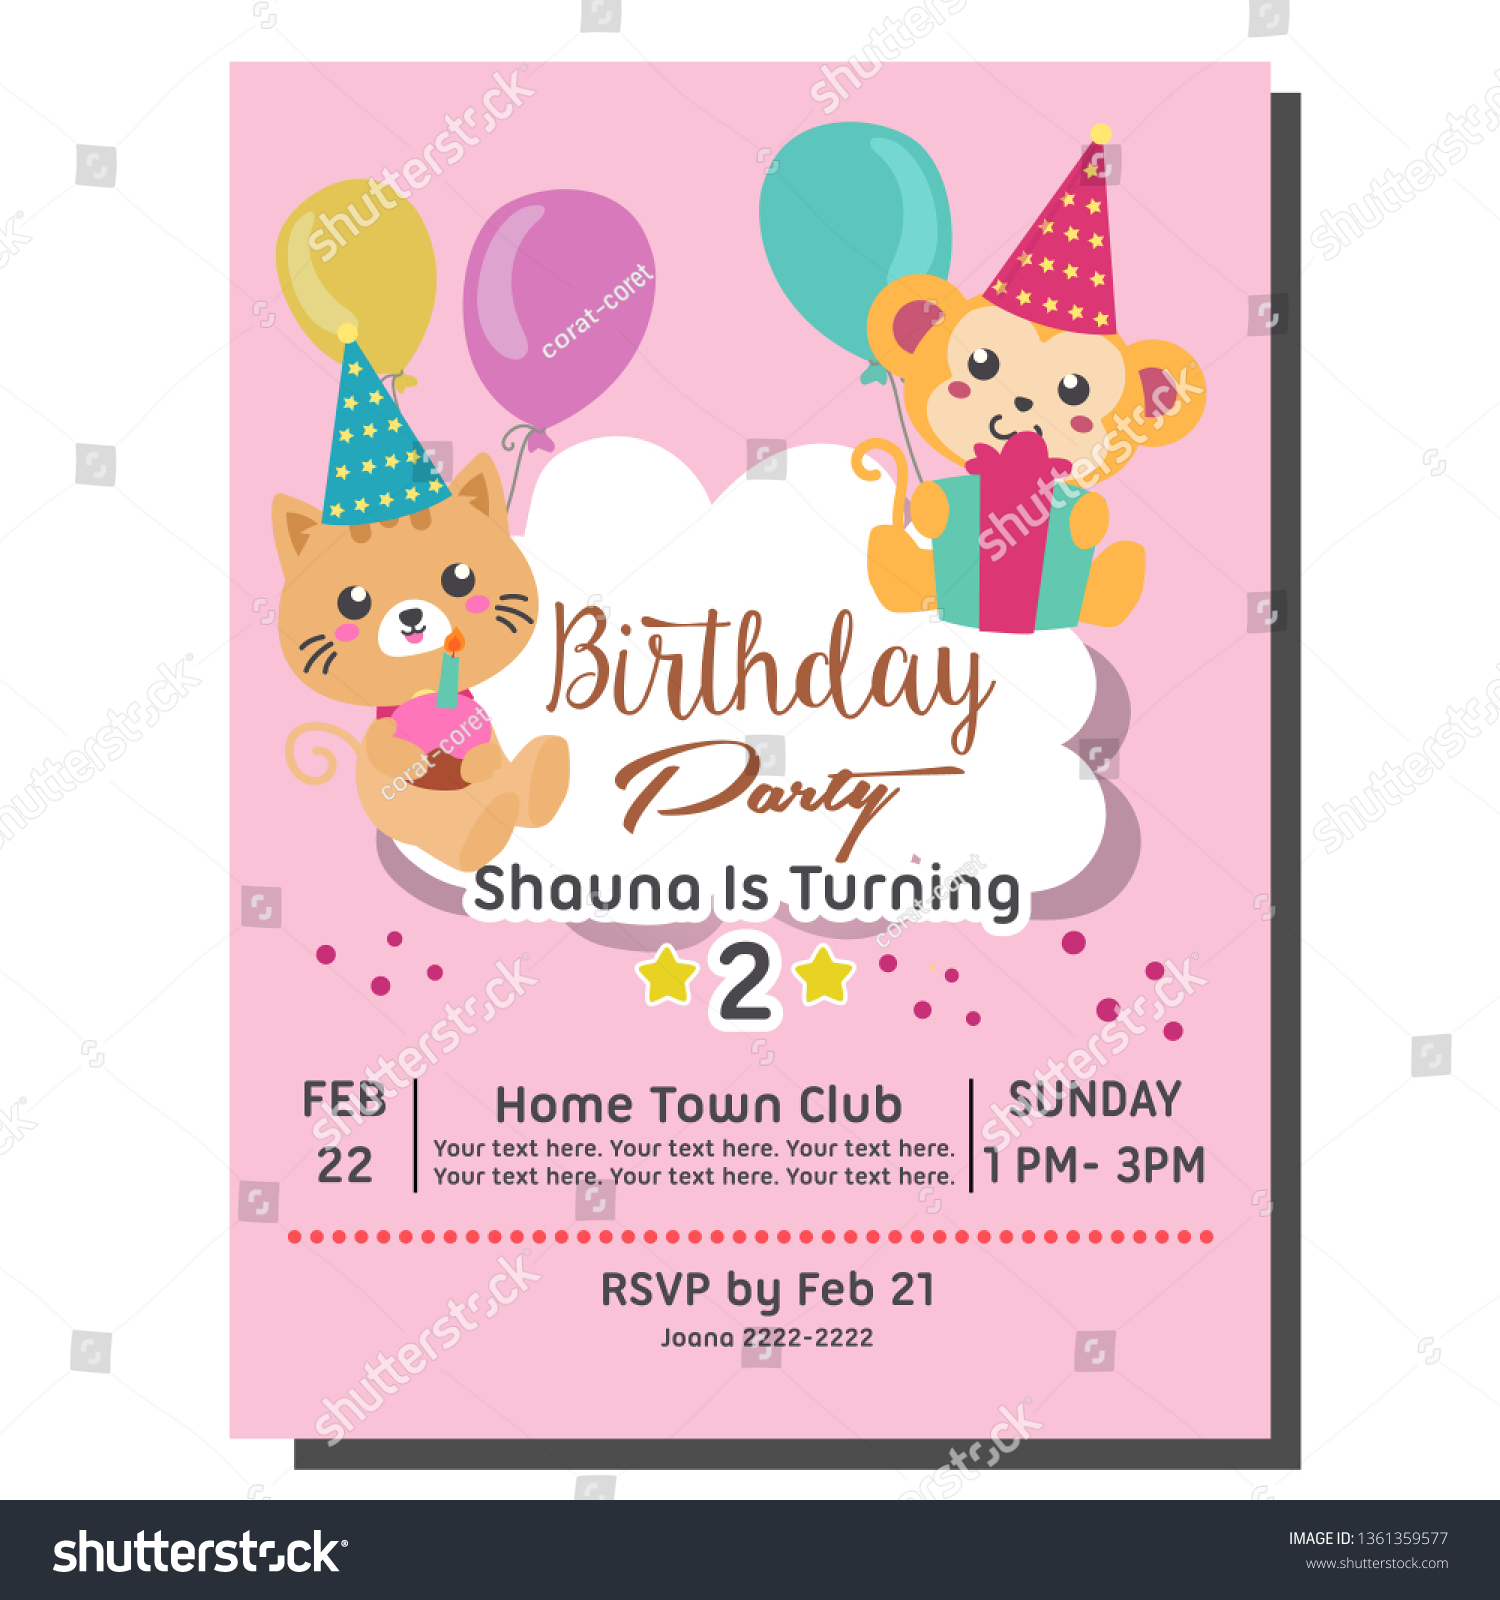 2nd Birthday Party Invitation Card Template Stock Vector